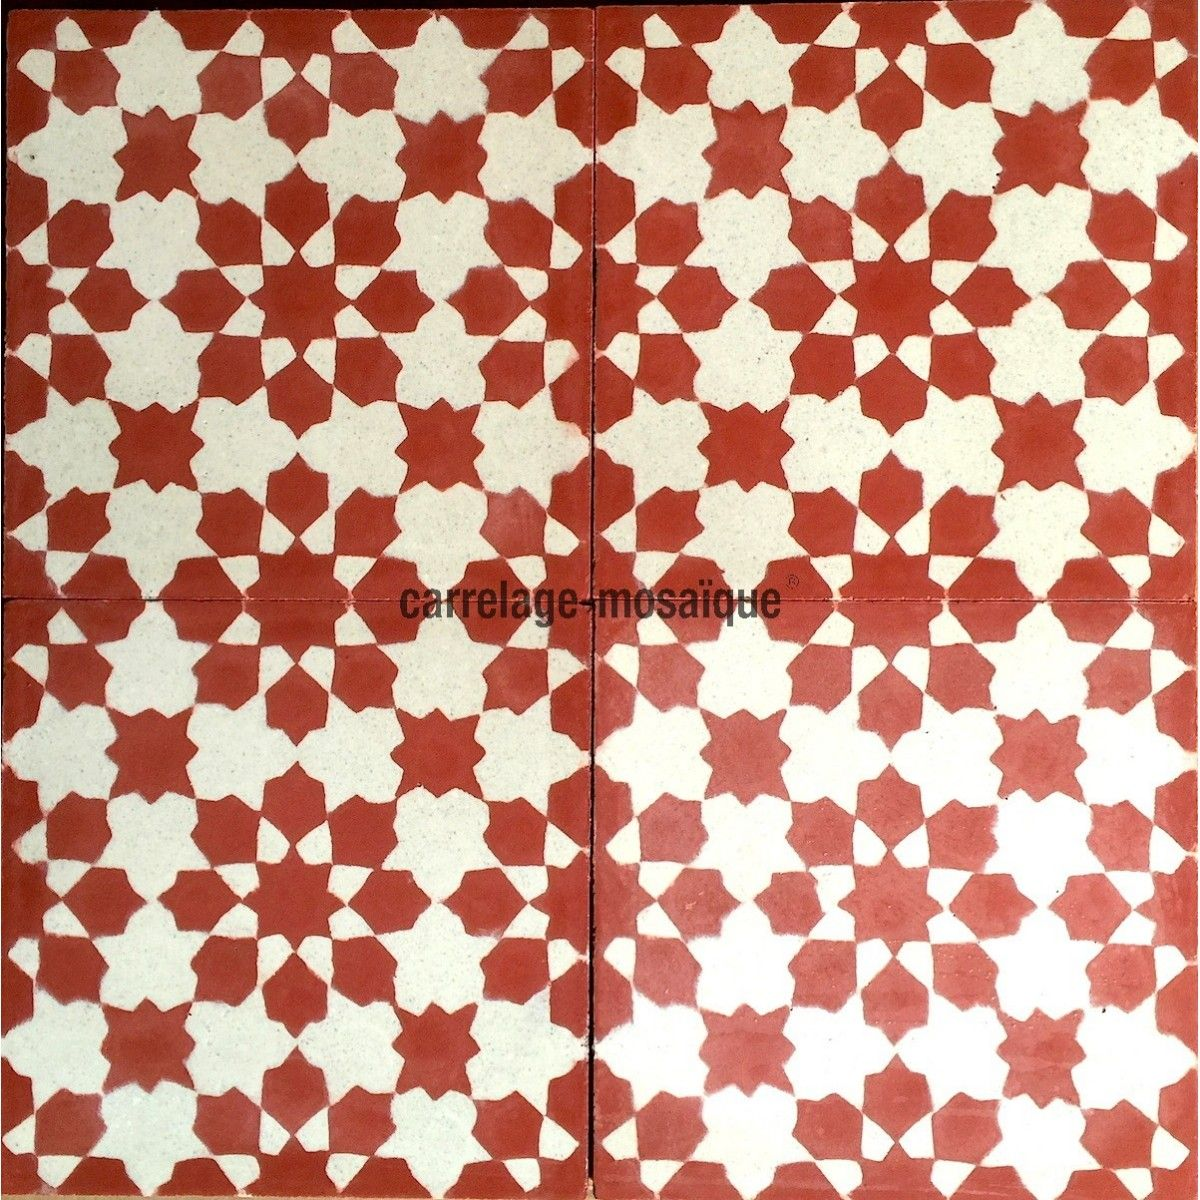 Carrelage Motif Carreau De Ciment Carreaux De Ciment 1m2 Modele Prisma Rouge Carrelage